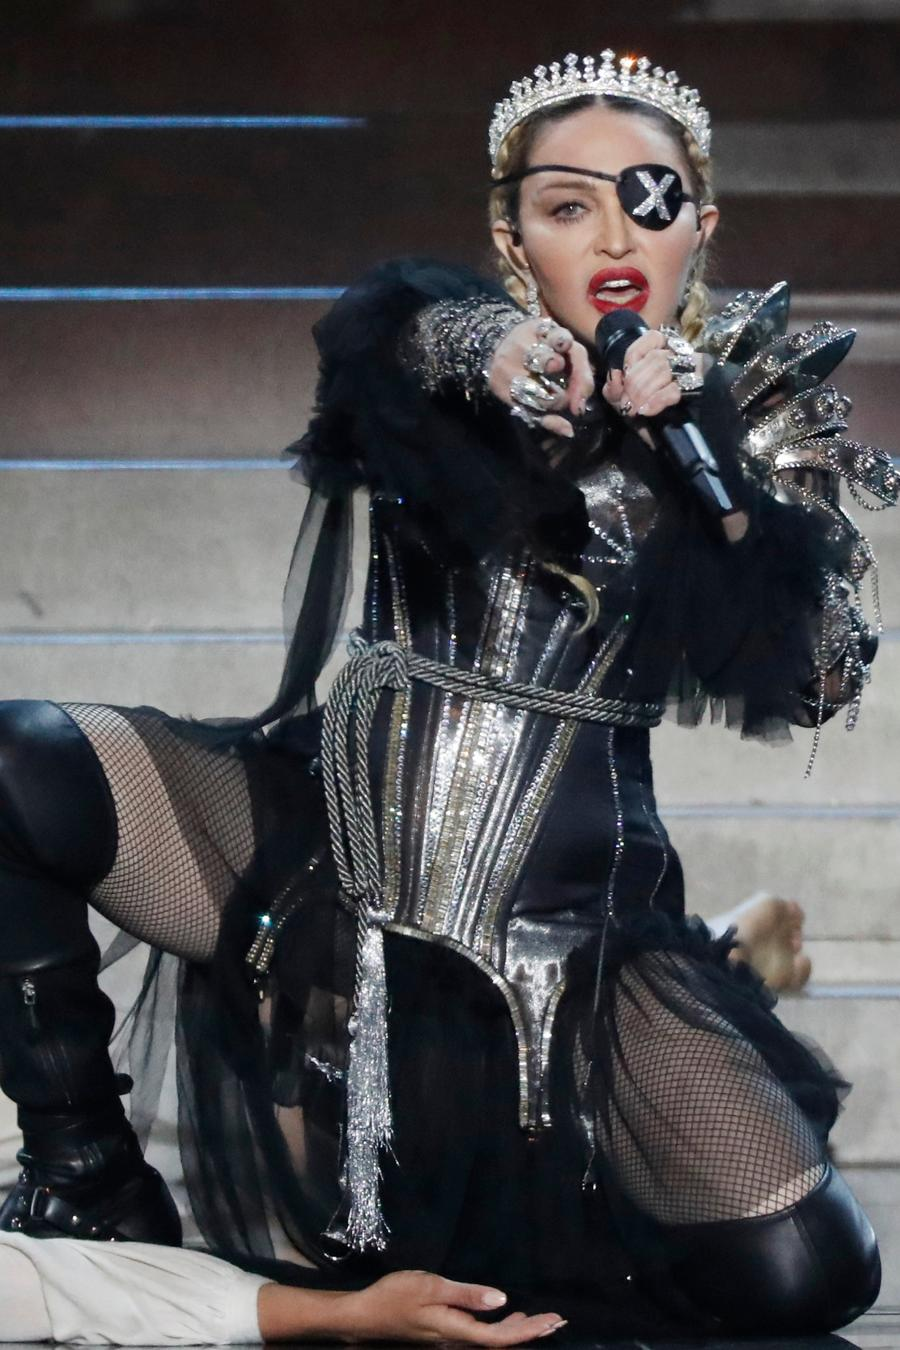 Madonna performs live in concert